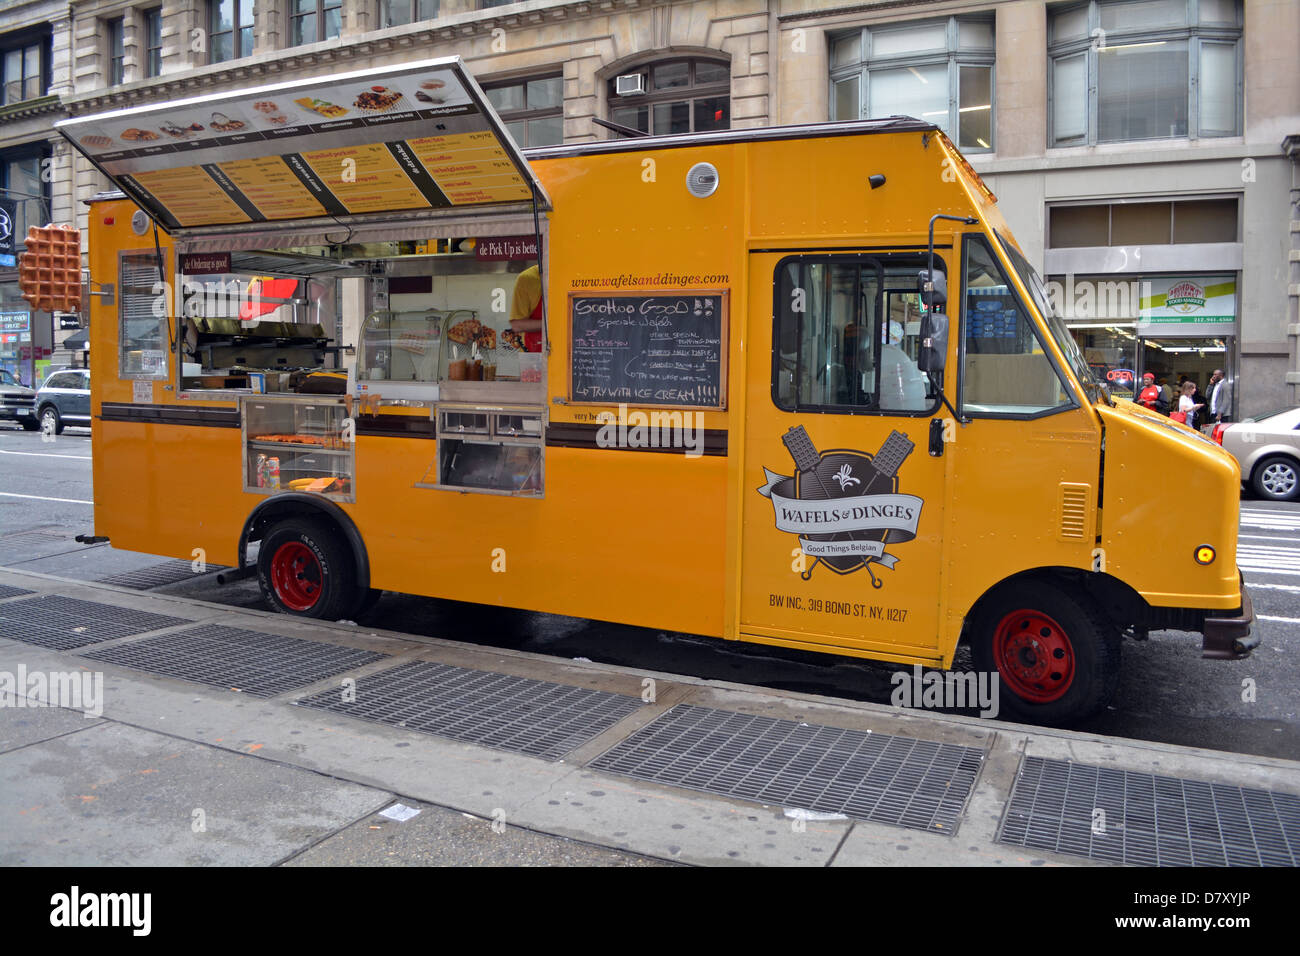 Wafles & Dinges, a food truck on Broadway in the Soho district of New York City Stock Photo